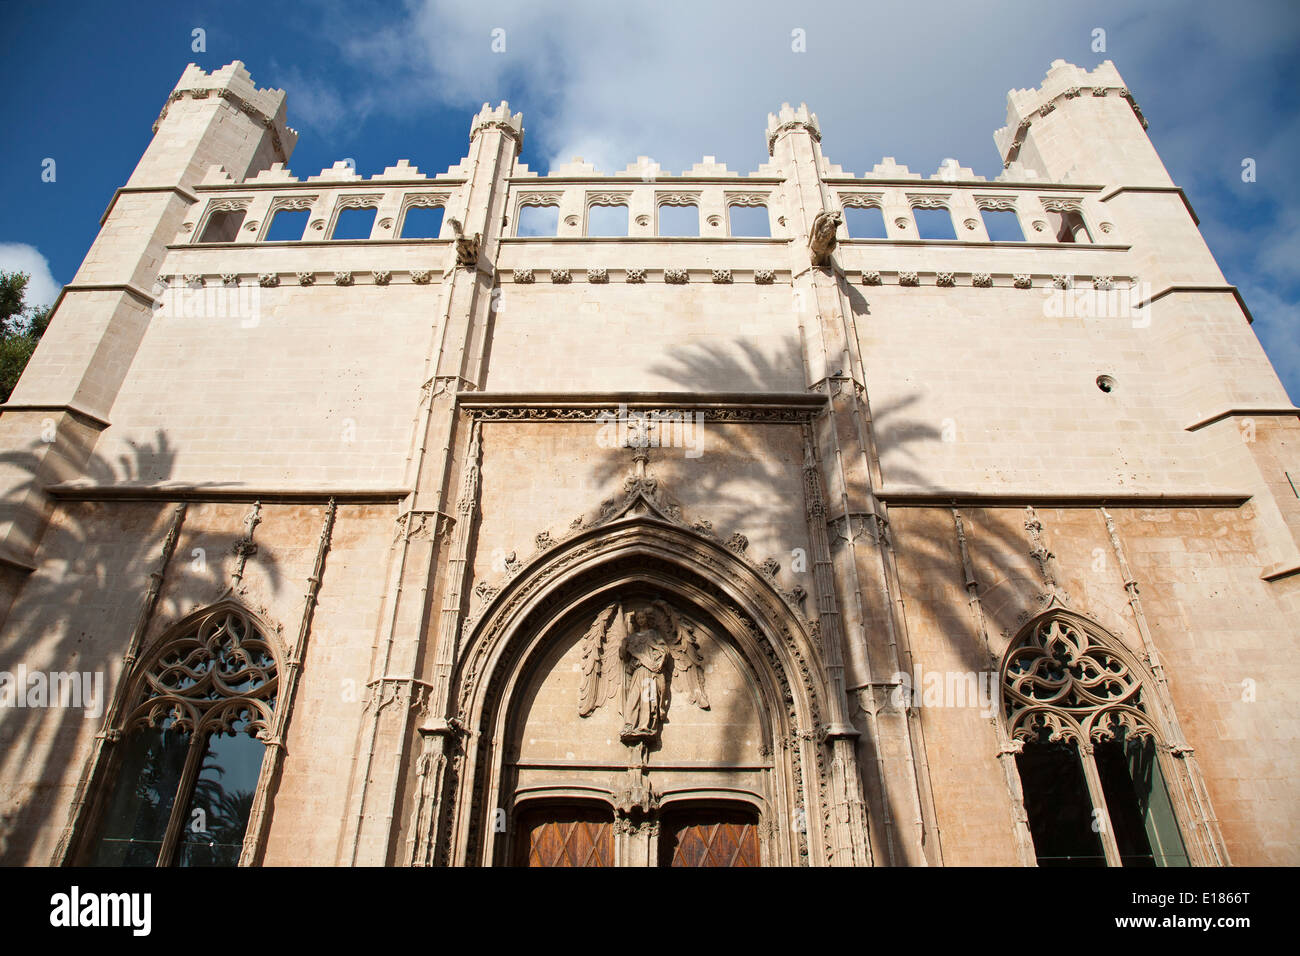 Sa llotja, historical building, palma de mallorca, mallorca island, spain, europe Stock Photo